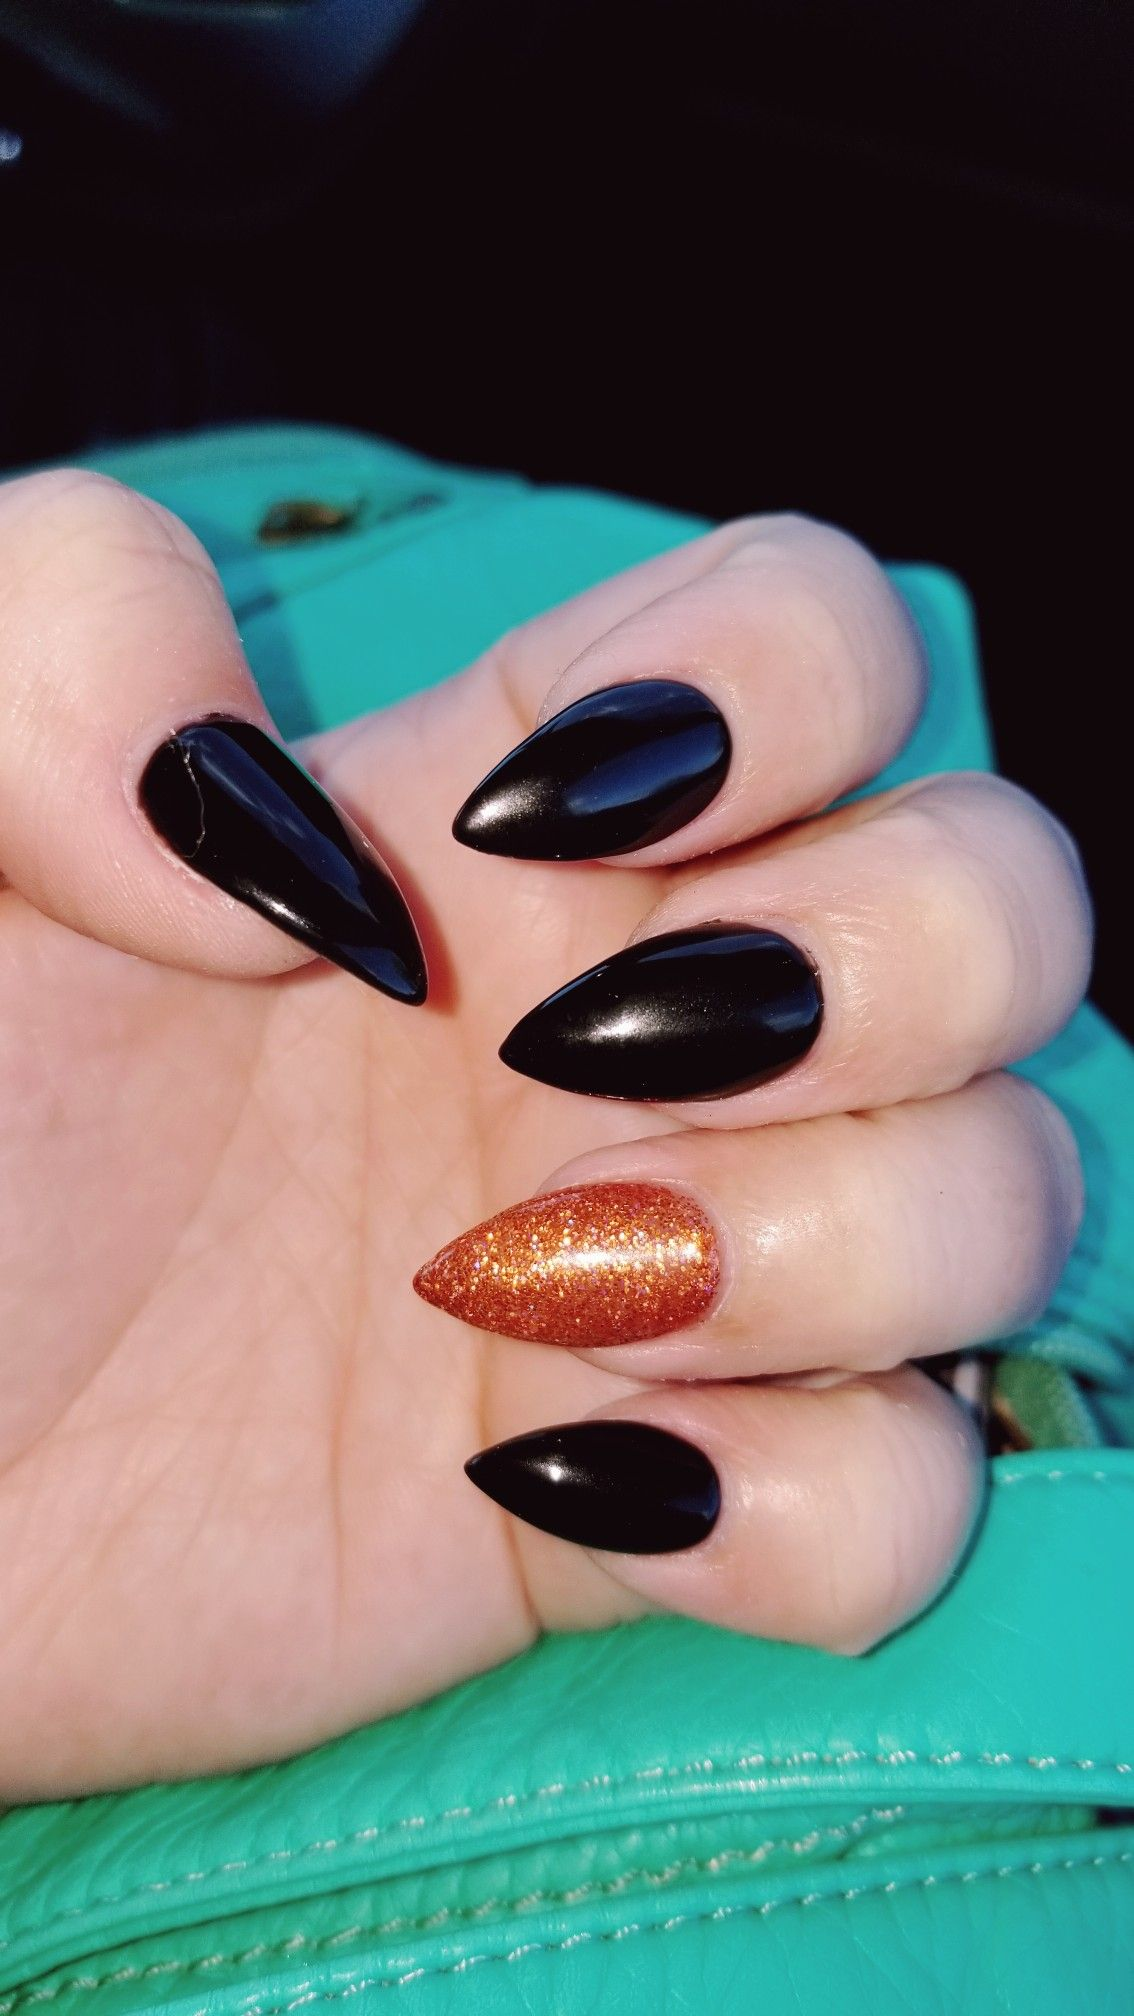 Pin by Amanda Tyrrell on nails | Halloween acrylic nails ...